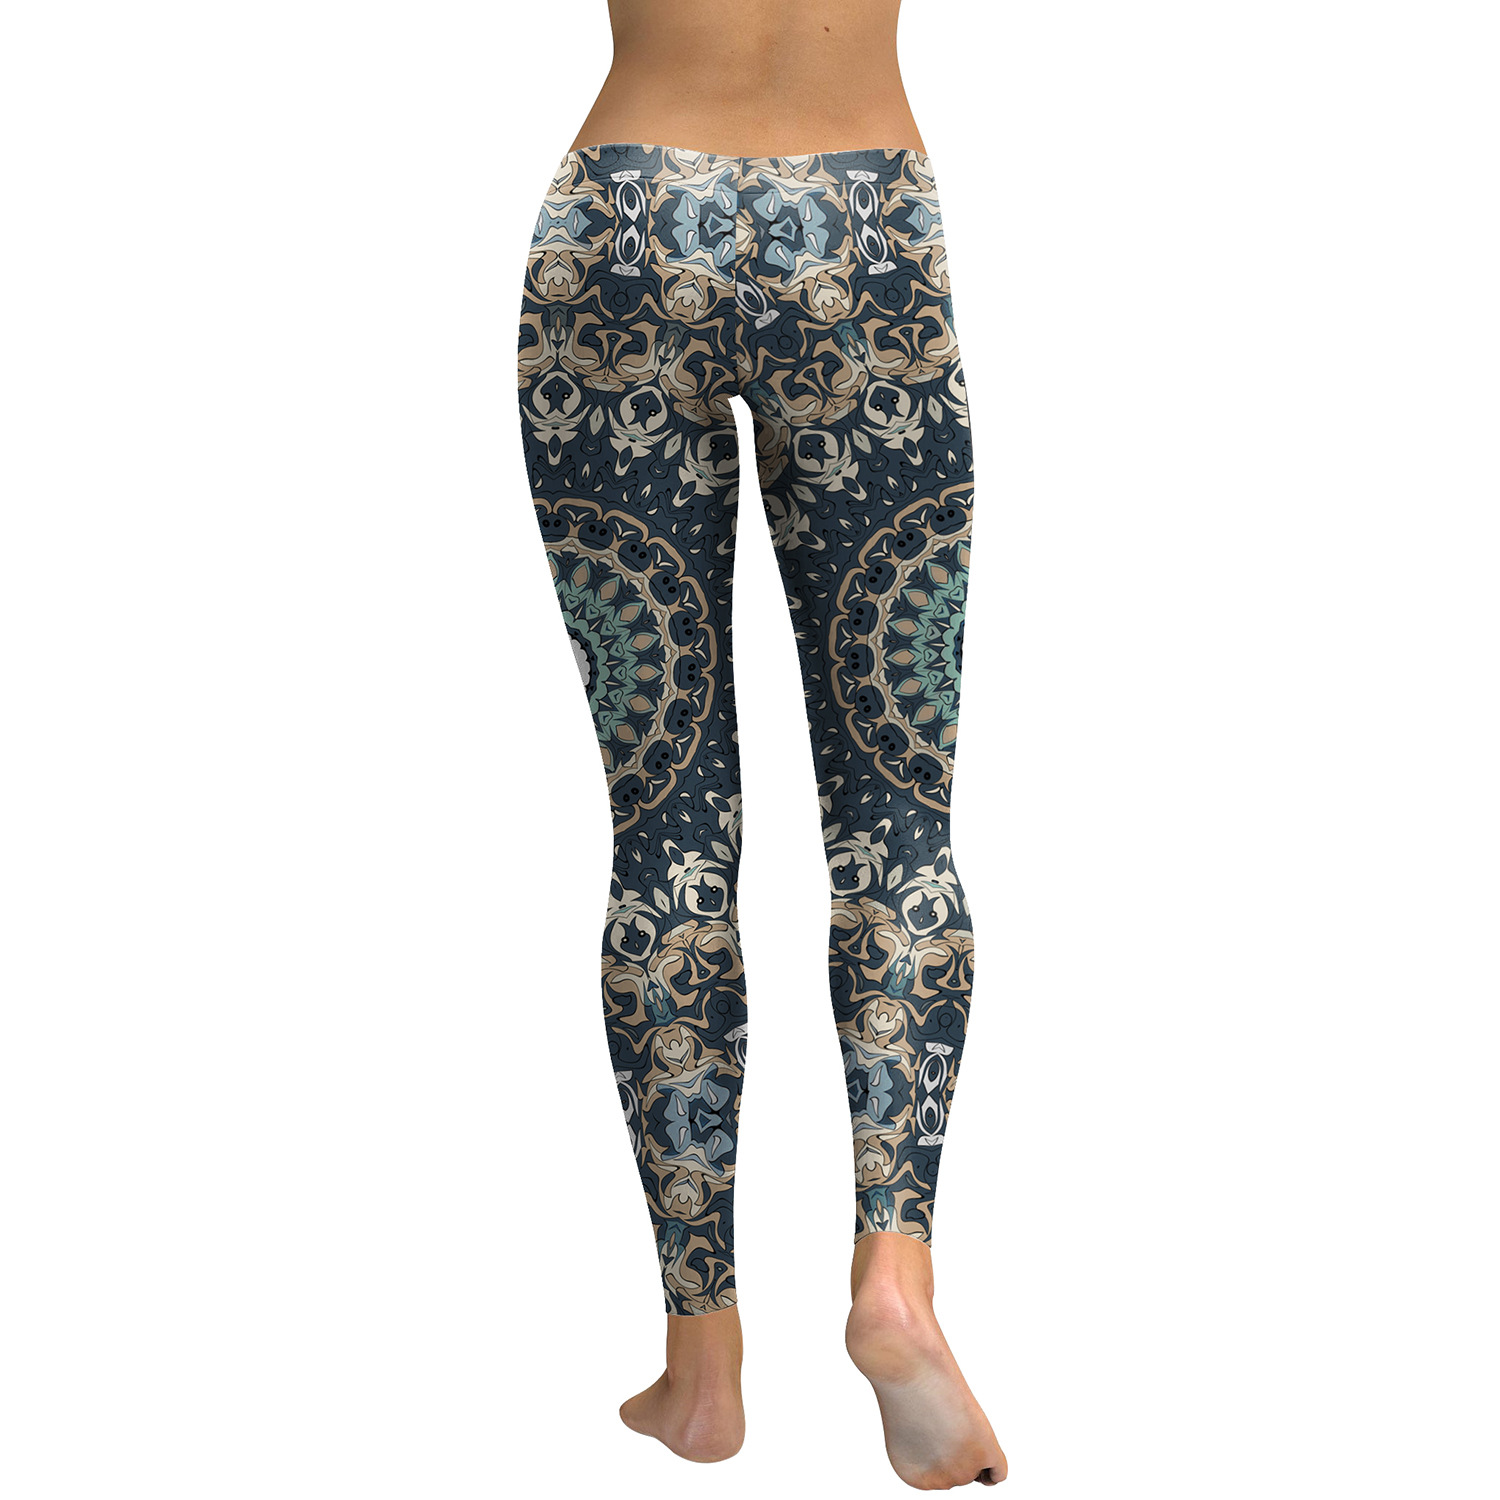 Legging Sport Gym Yoga Beautiful Mandala